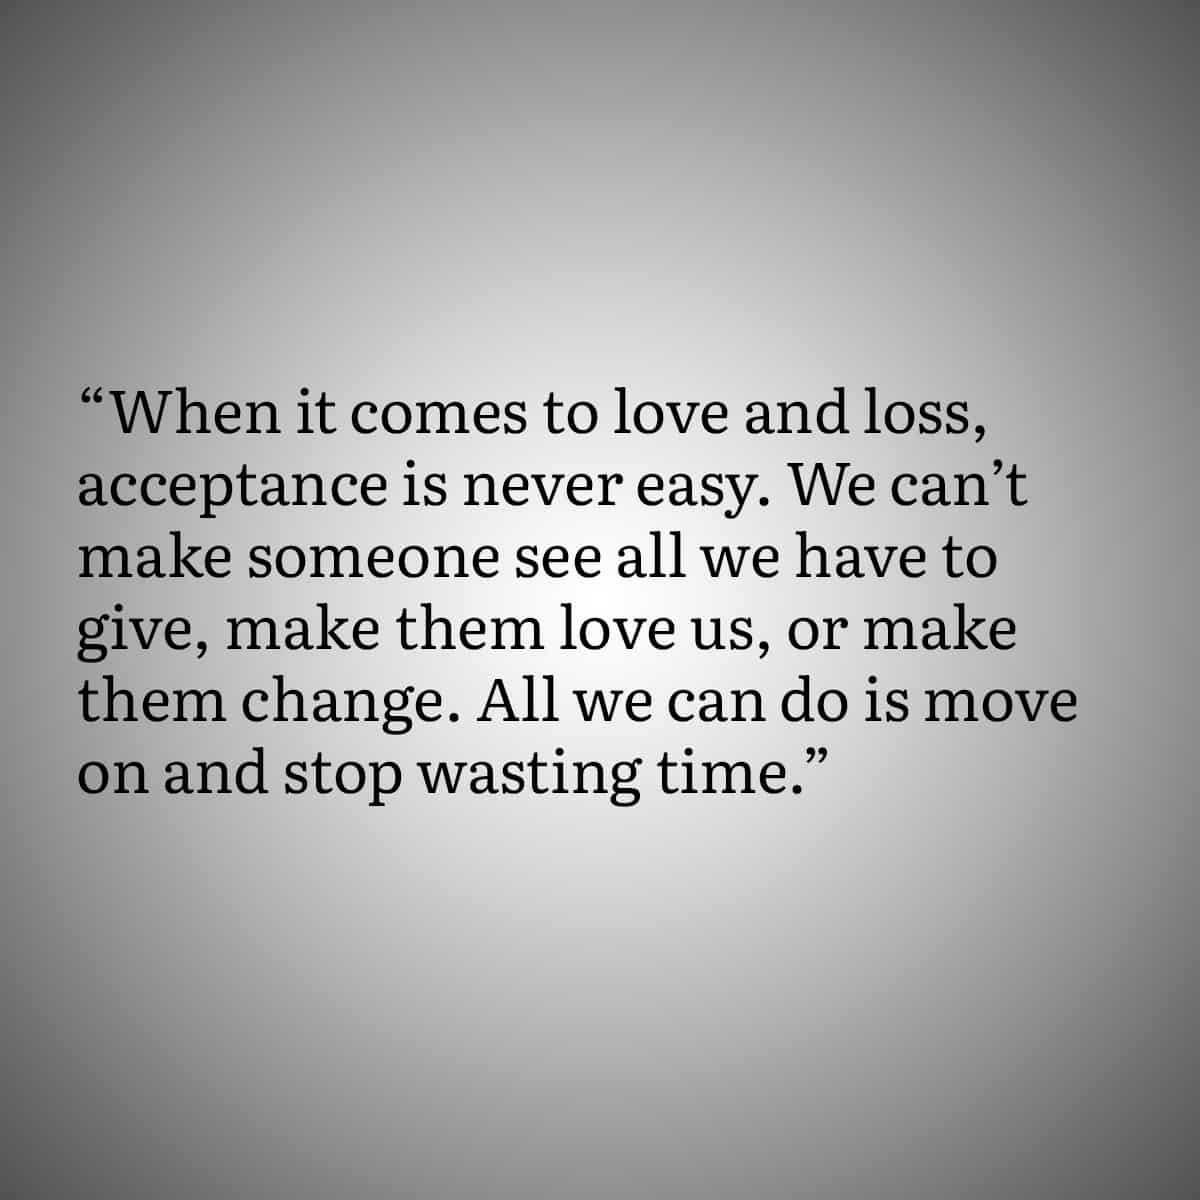 """Broken Heart Quote 2: When it comes to love and loss, acceptance is never easy. We can't make someone see all we have to give, make them love us, or make them change. All we can do is move on, and stop wasting time."""""""